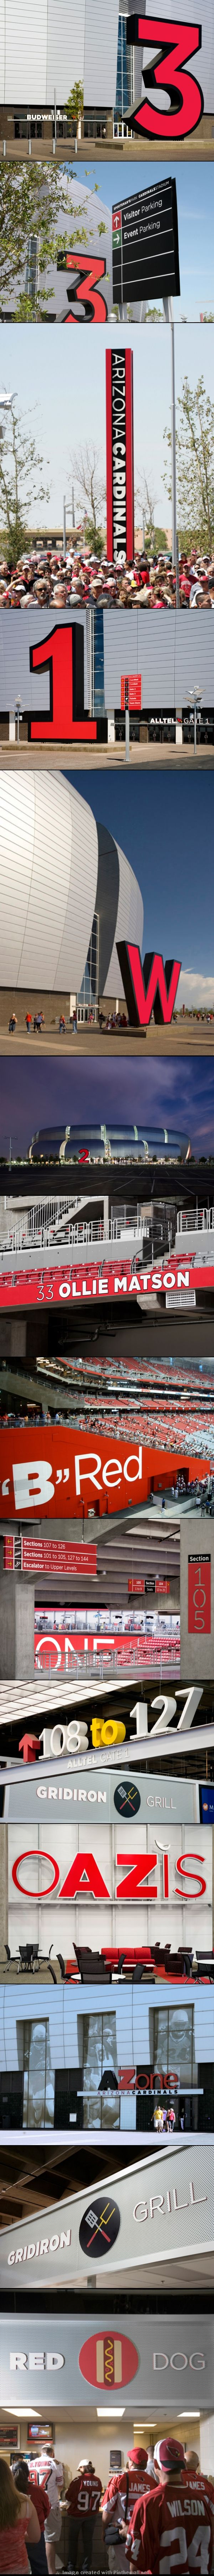 Arizona Cardinals Stadium wayfinding | by Pentagram (Michael Gericke and team)